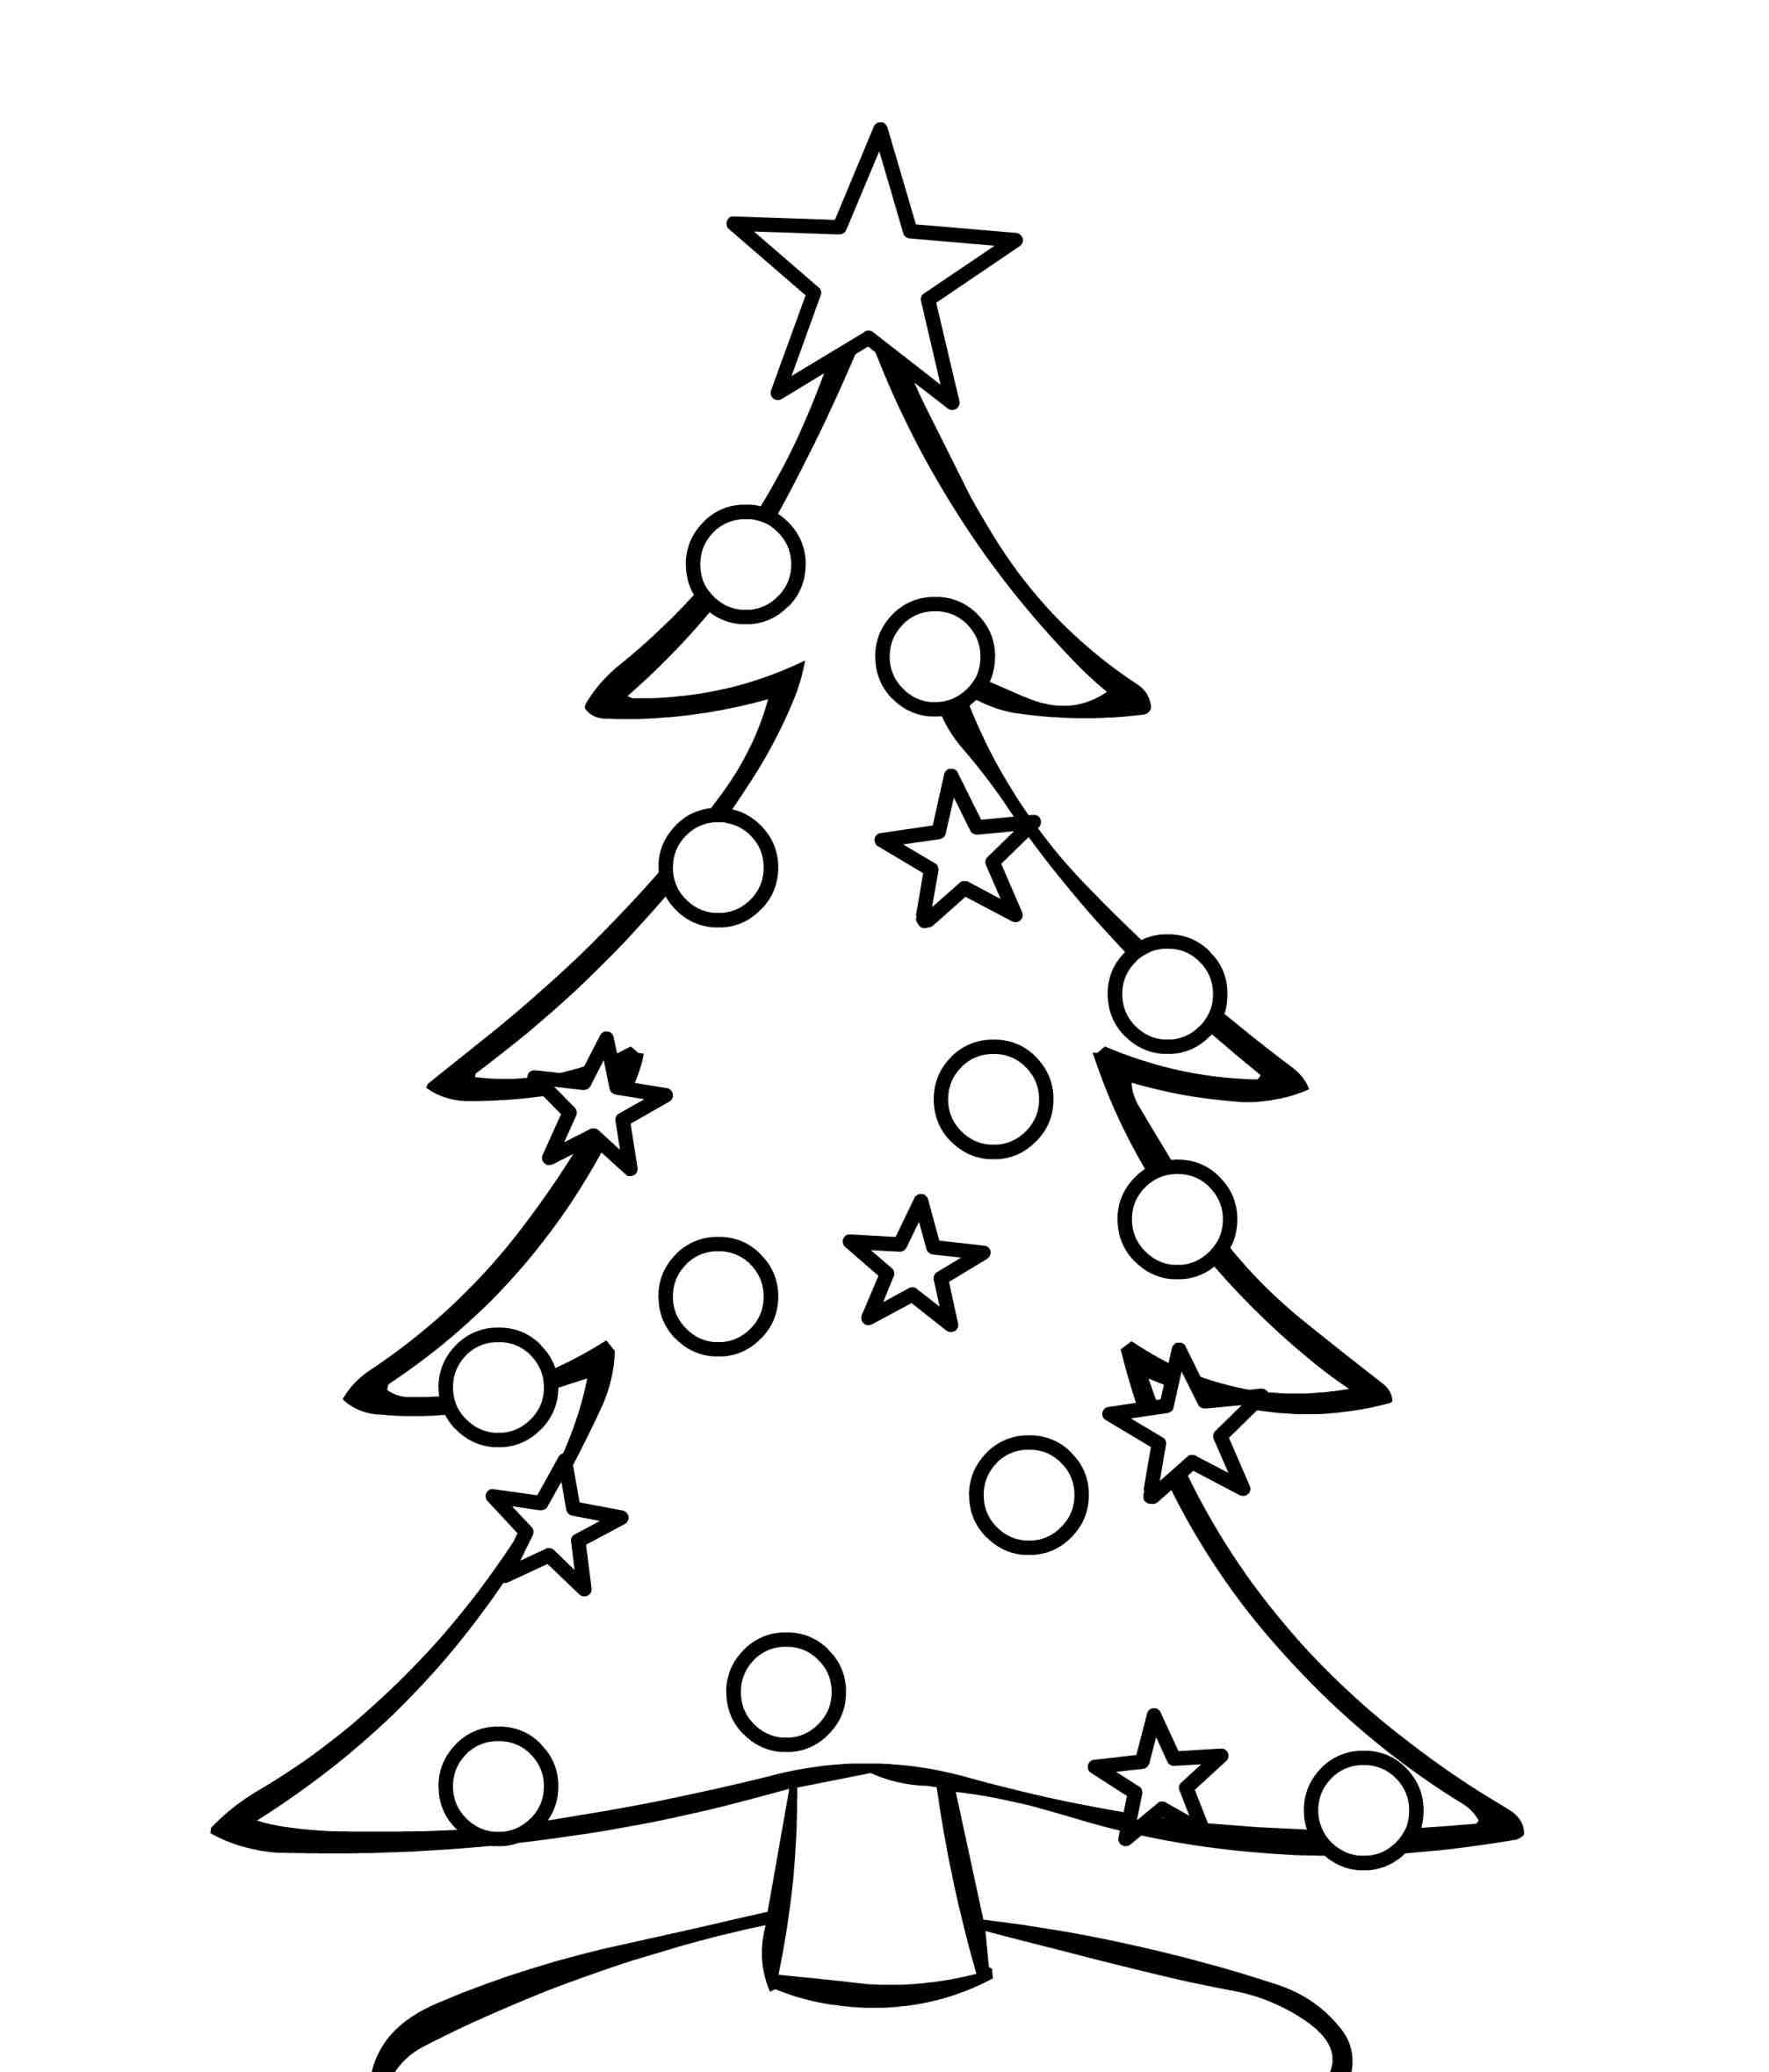 2014x2359 Coloring Pages For Children Coloring Christmas Tree Drawing